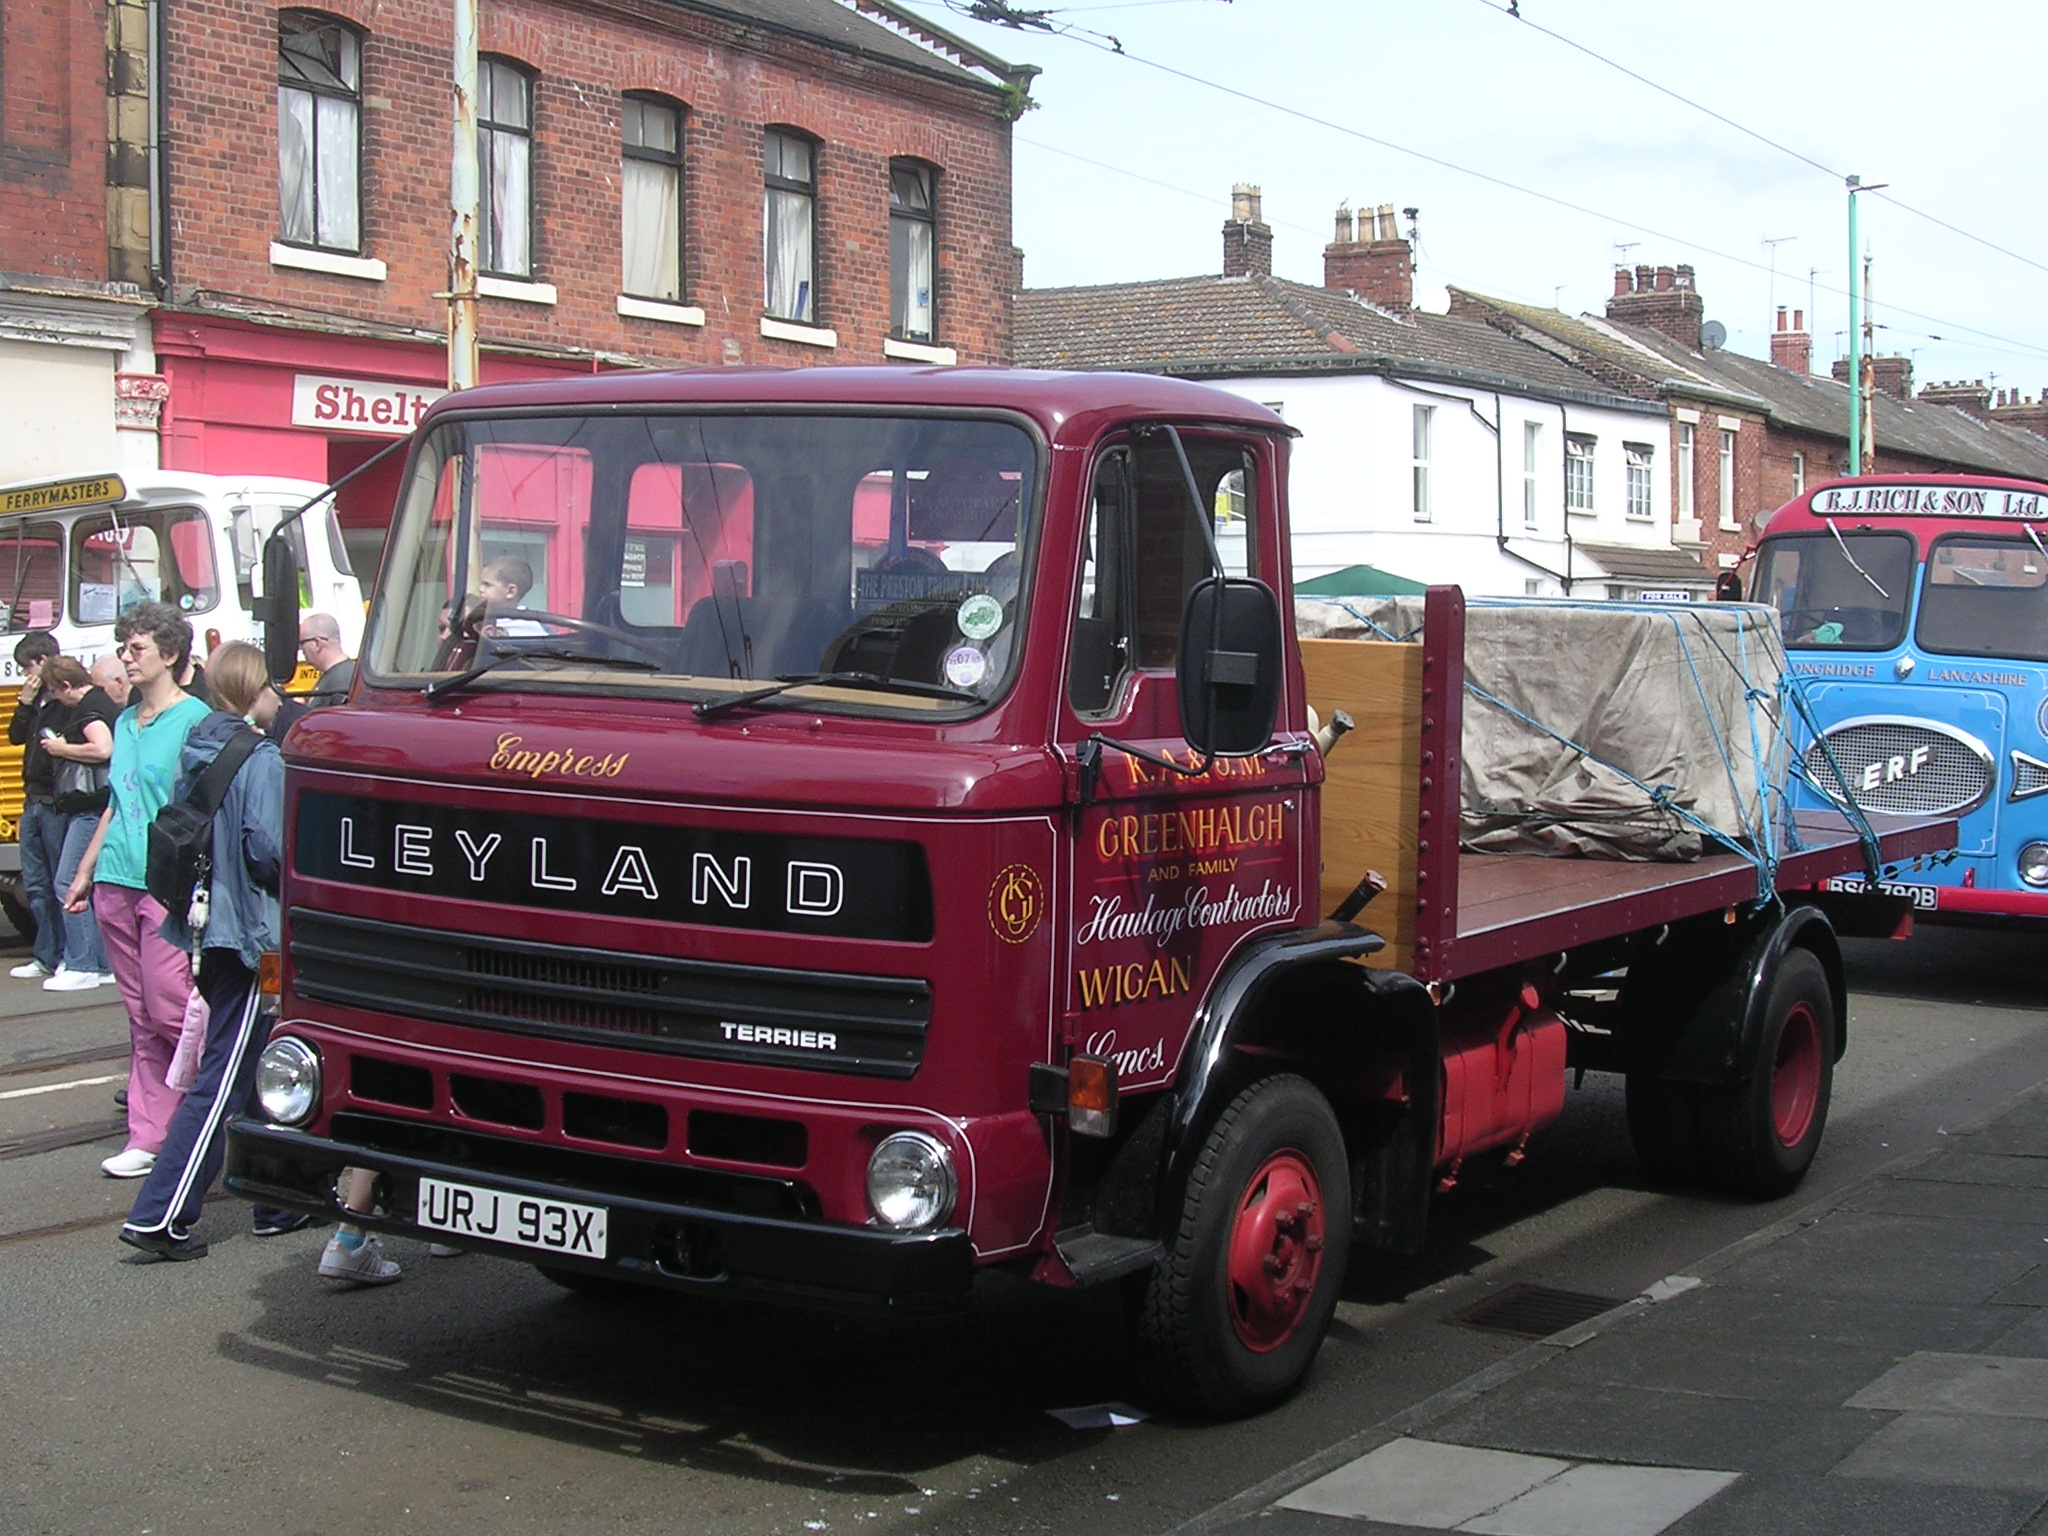 Leyland terrier photo - 7